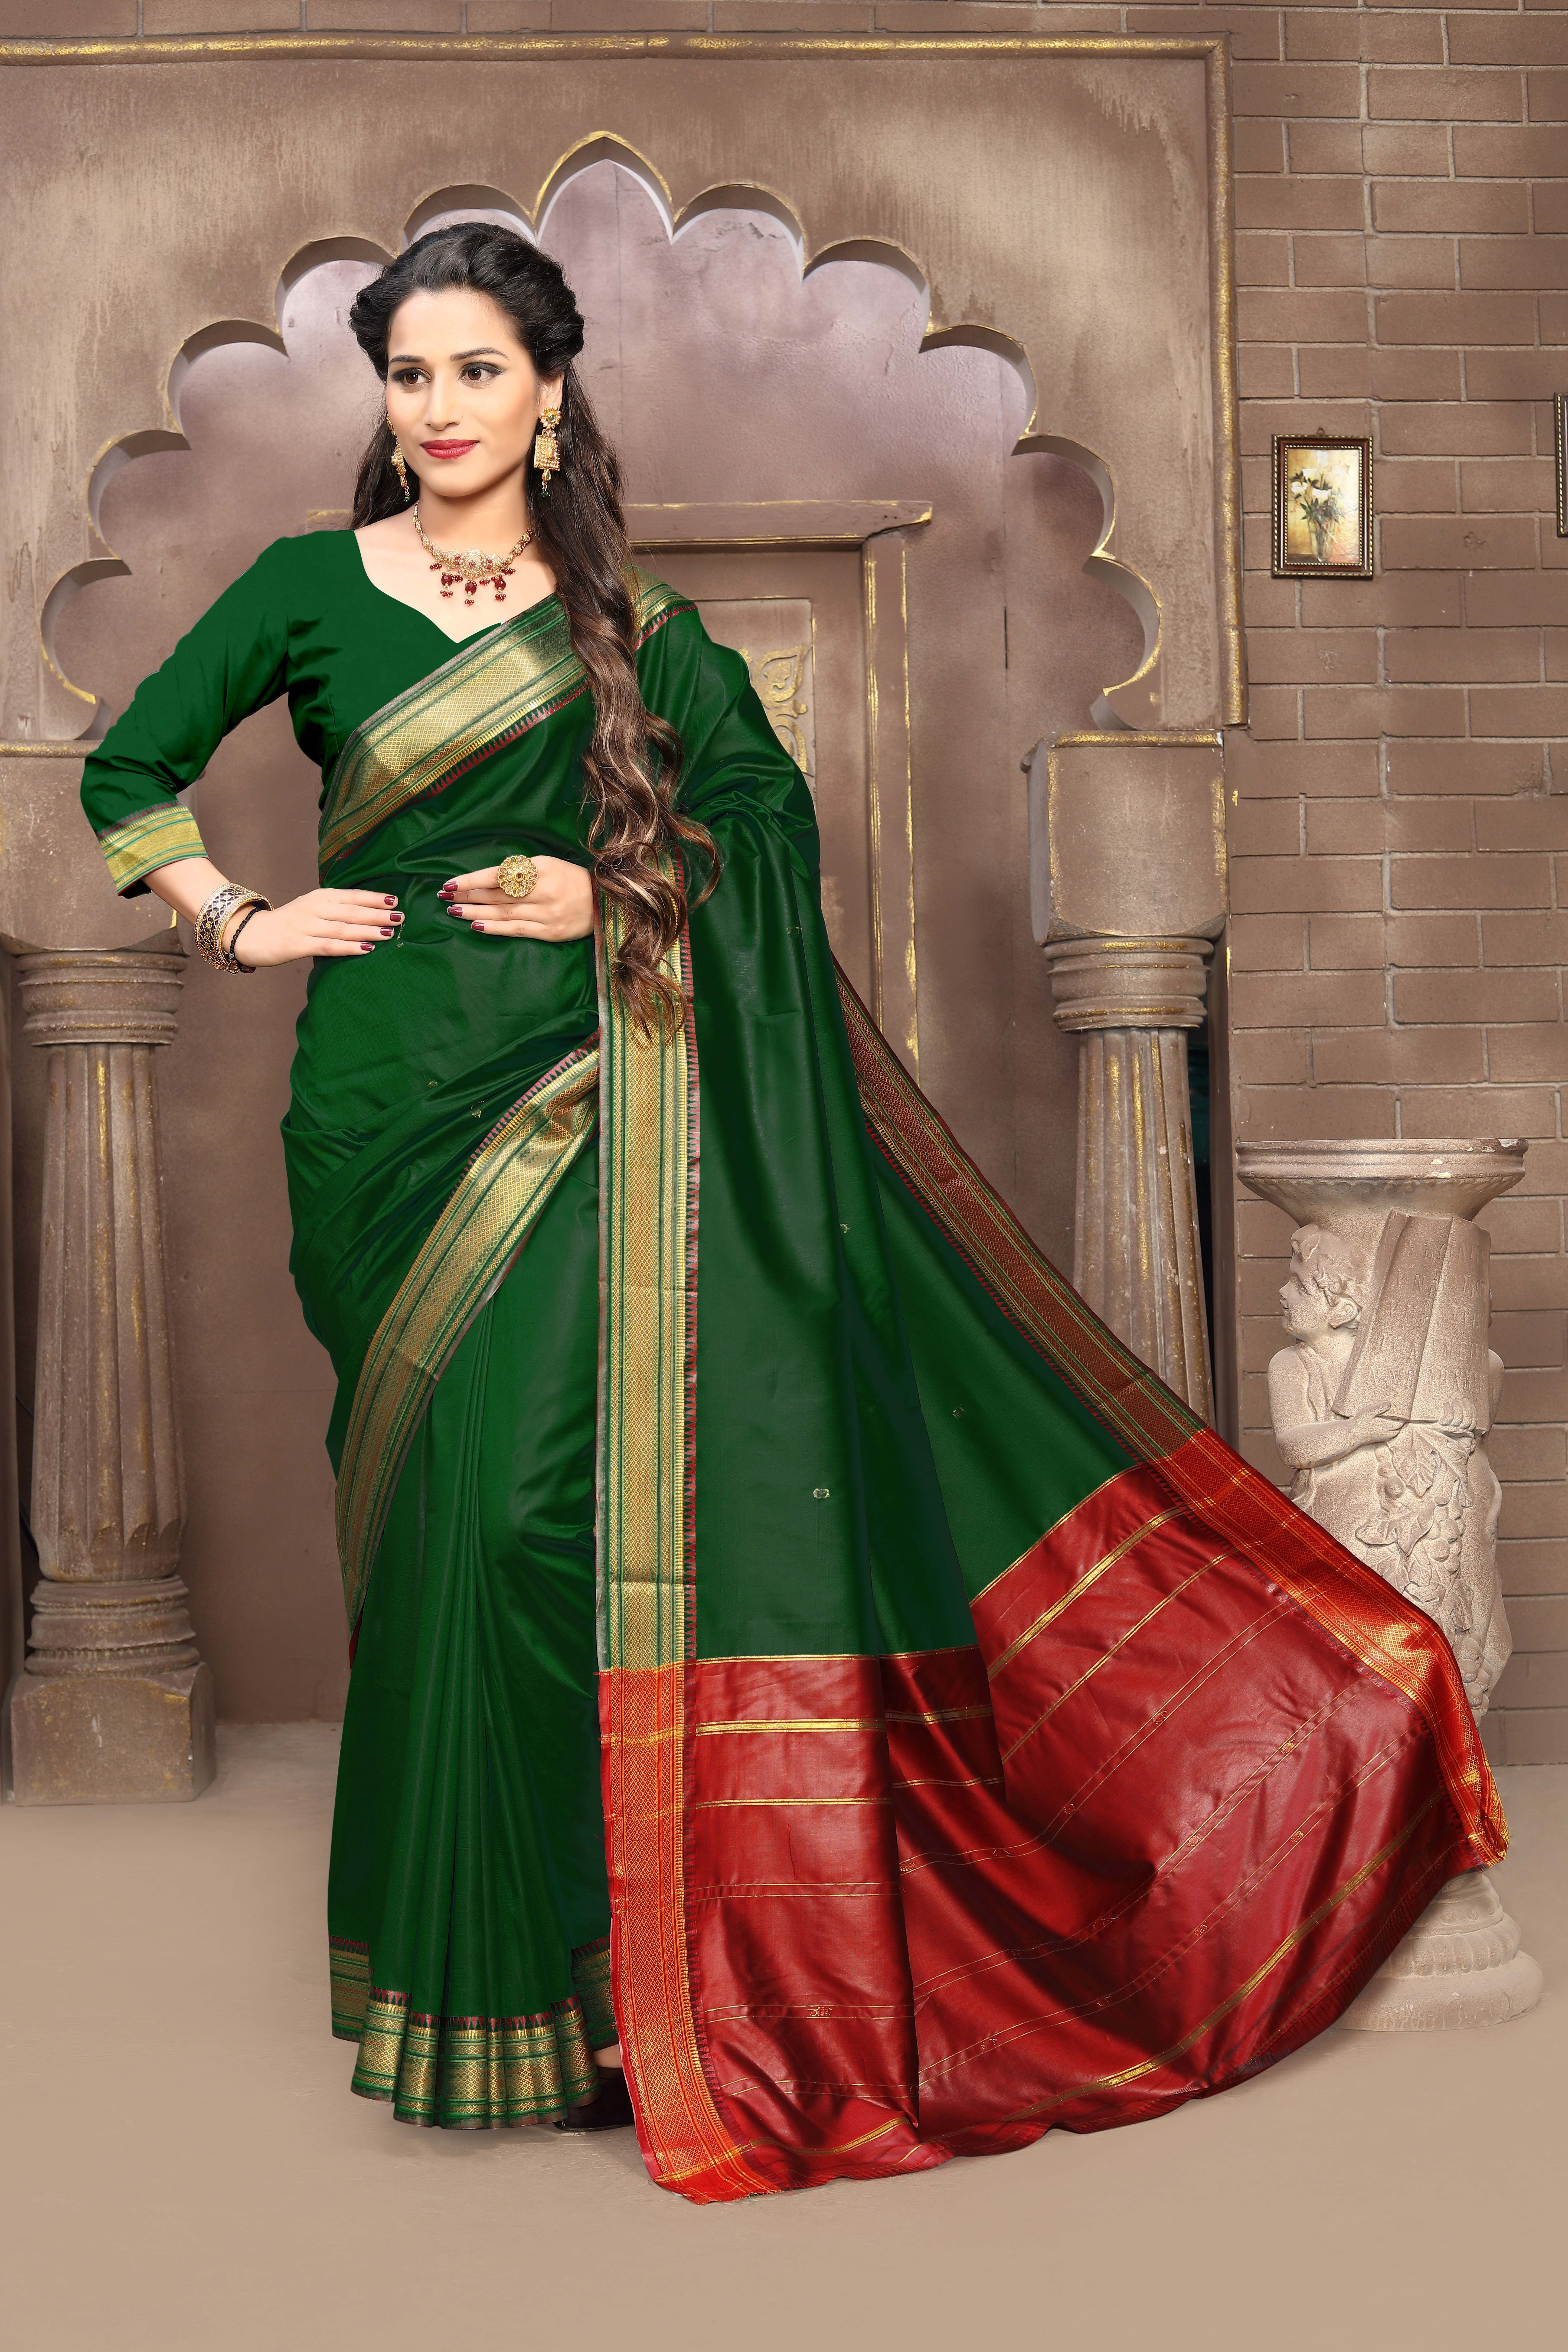 085e7d9d95 Buy Craftsvilla Green Color Silk Blend Zari Work Traditional Saree online.  ✯ 100% authentic products, ✯ Hand curated, ✯ Timely delivery, ...